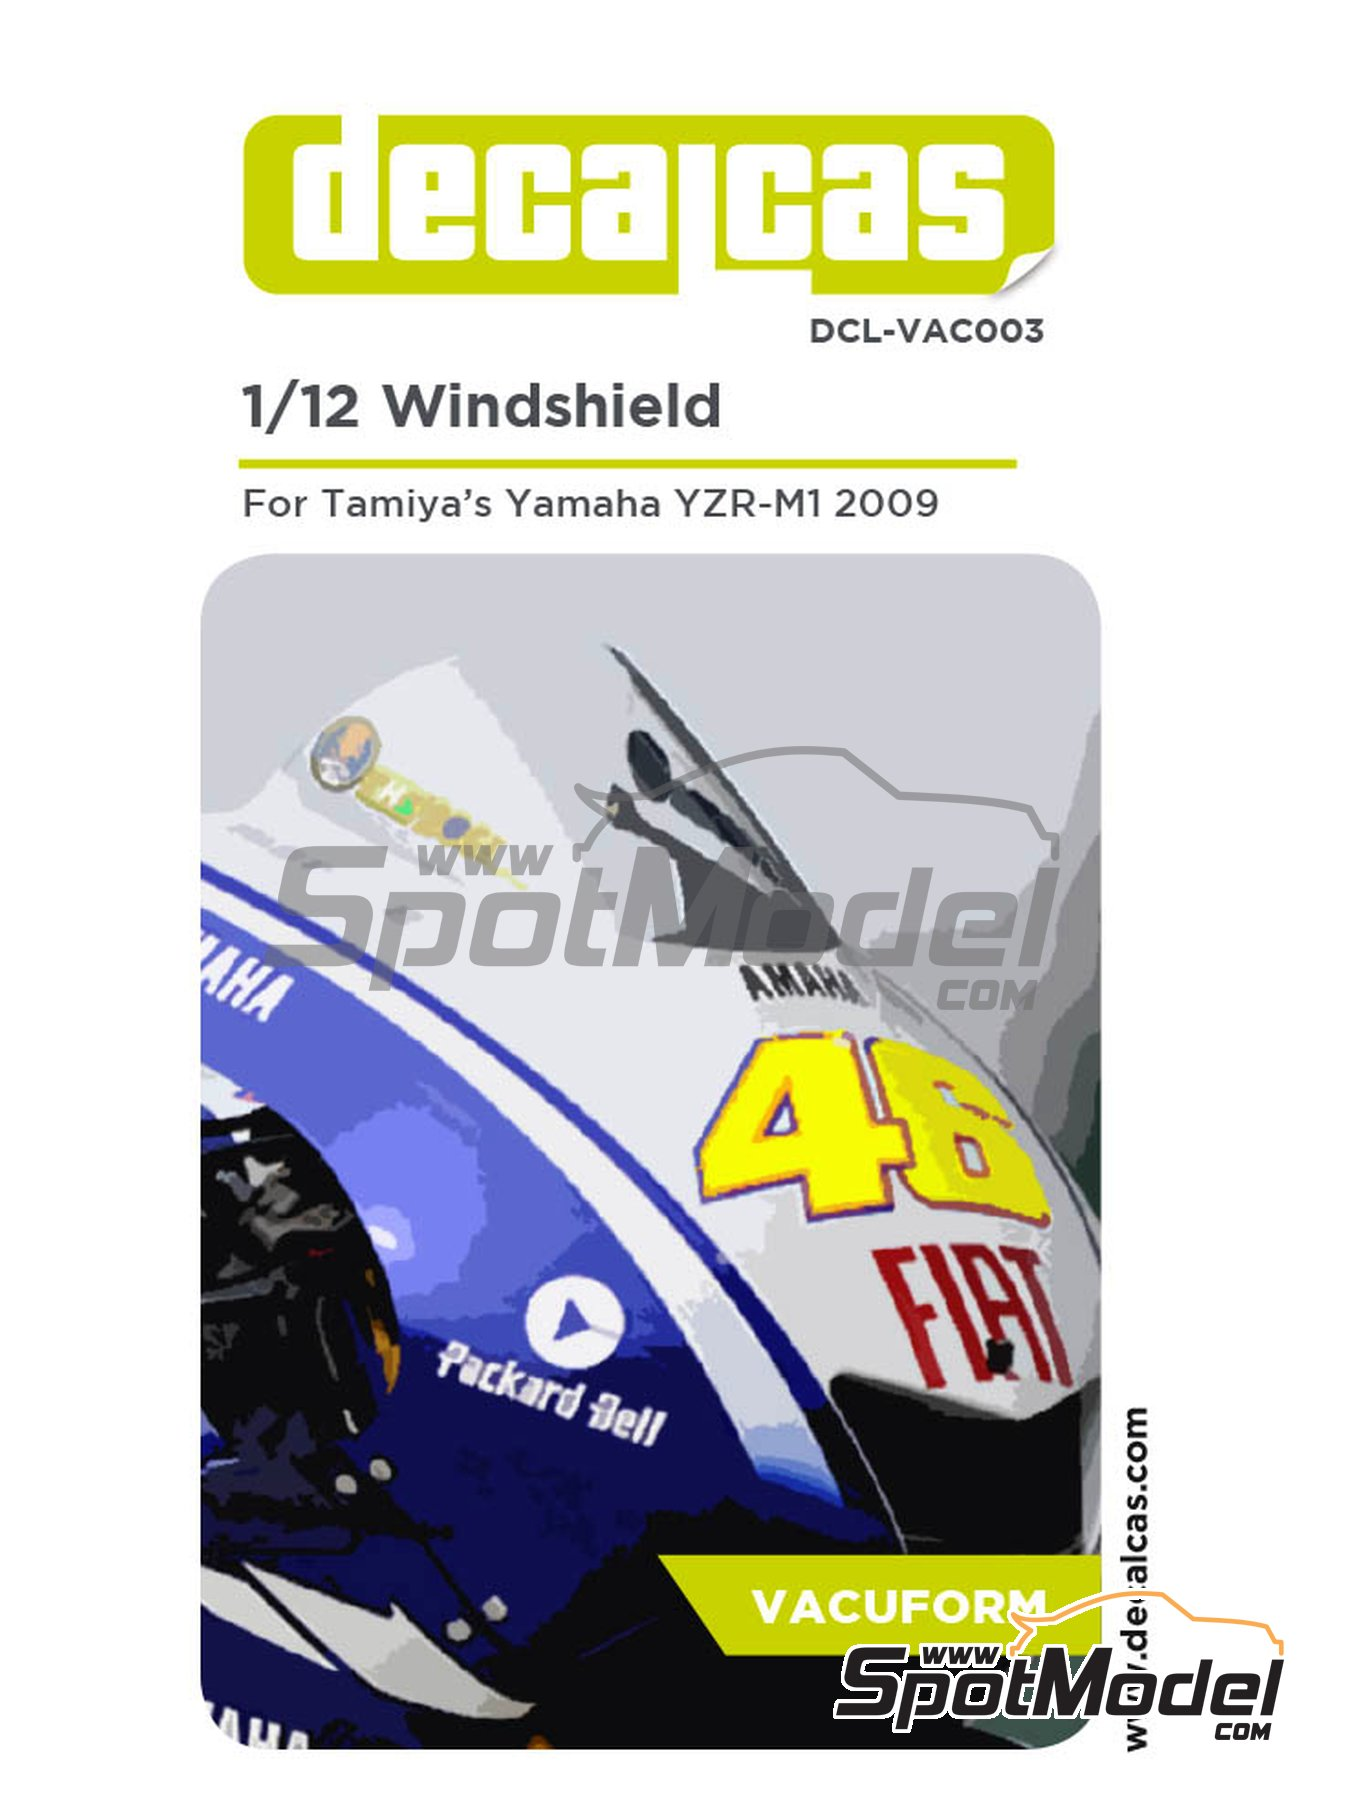 Yamaha YZR-M1 | Vacuum formed parts in 1/12 scale manufactured by Decalcas (ref.DCL-VAC003) image